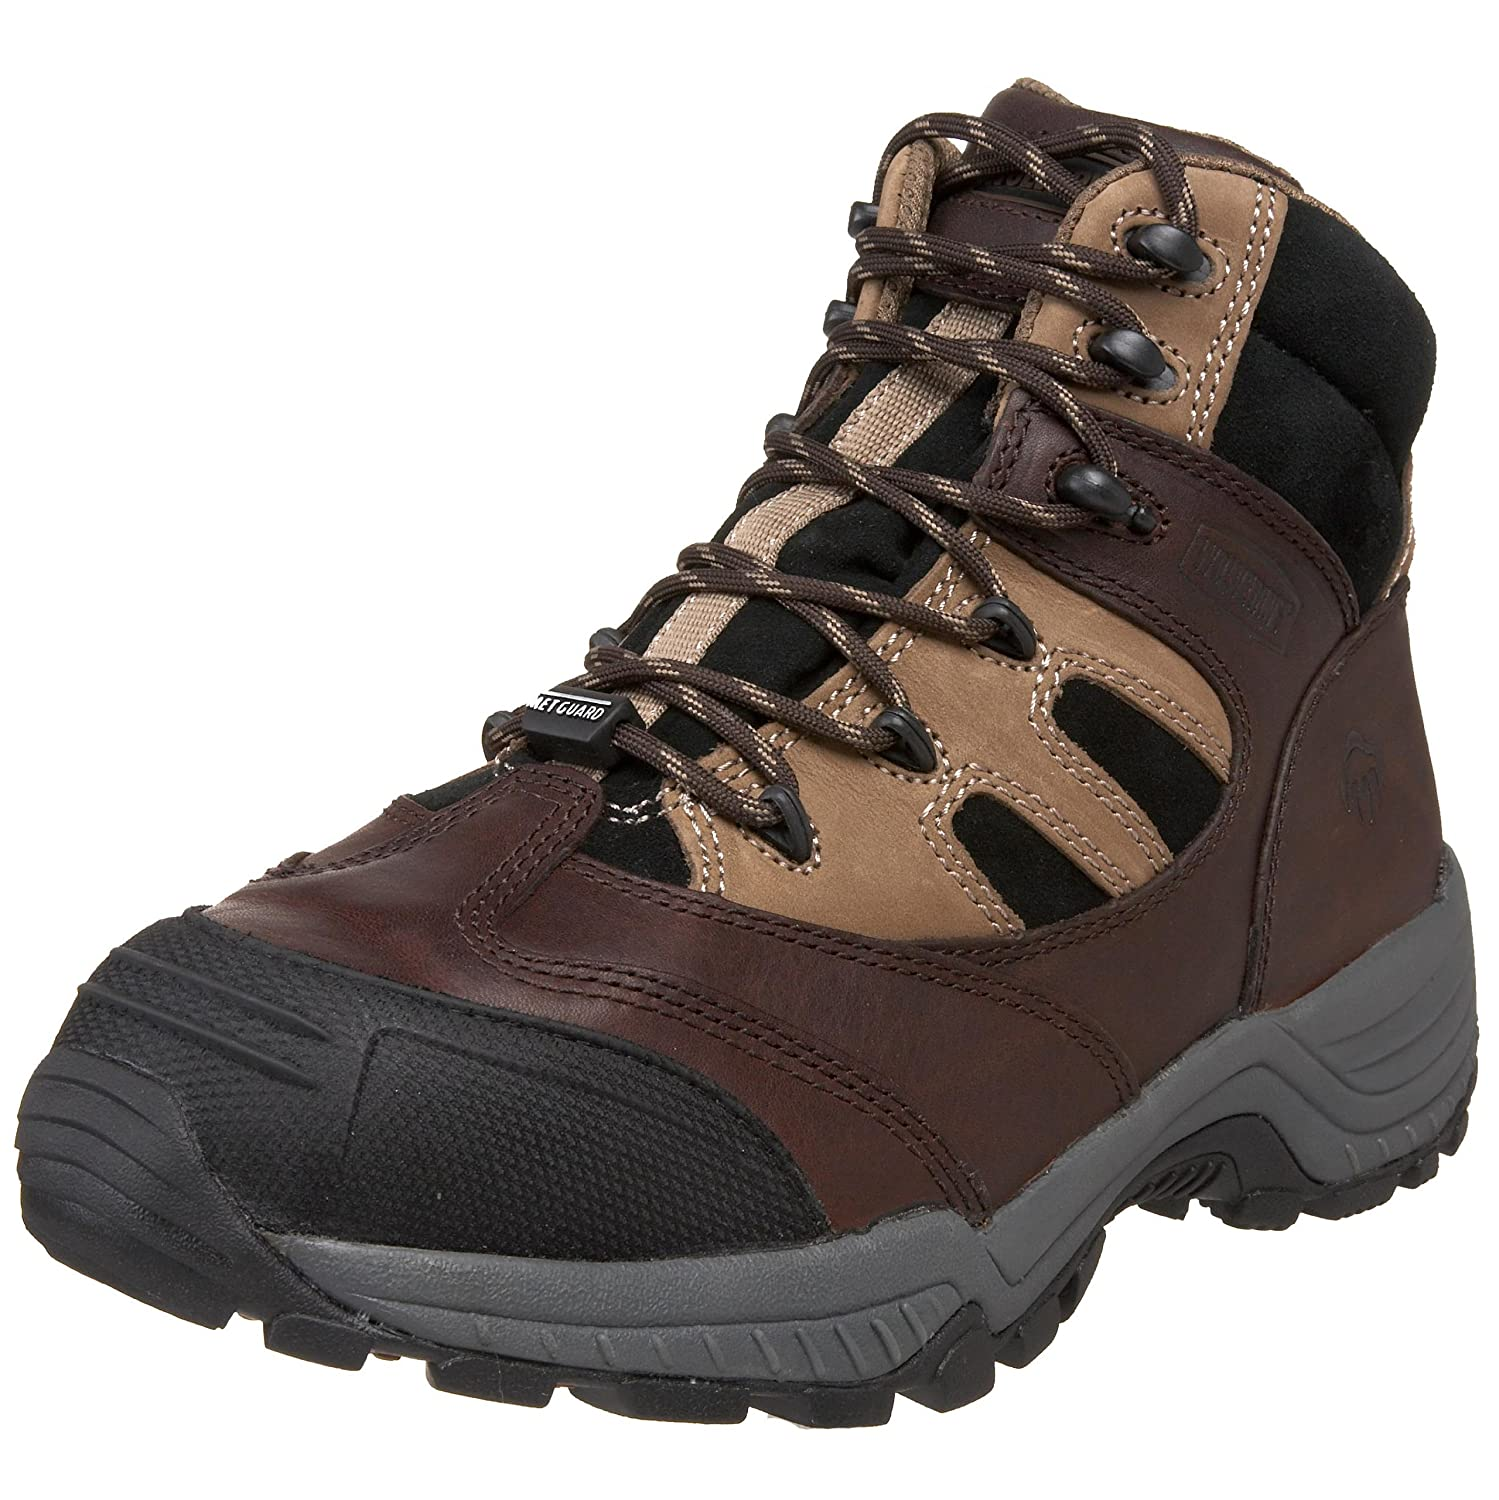 Wolverine メンズ Dark Brown/Black 8.5 D(M) US 8.5 D(M) USDark Brown/Black B000NJS3IE